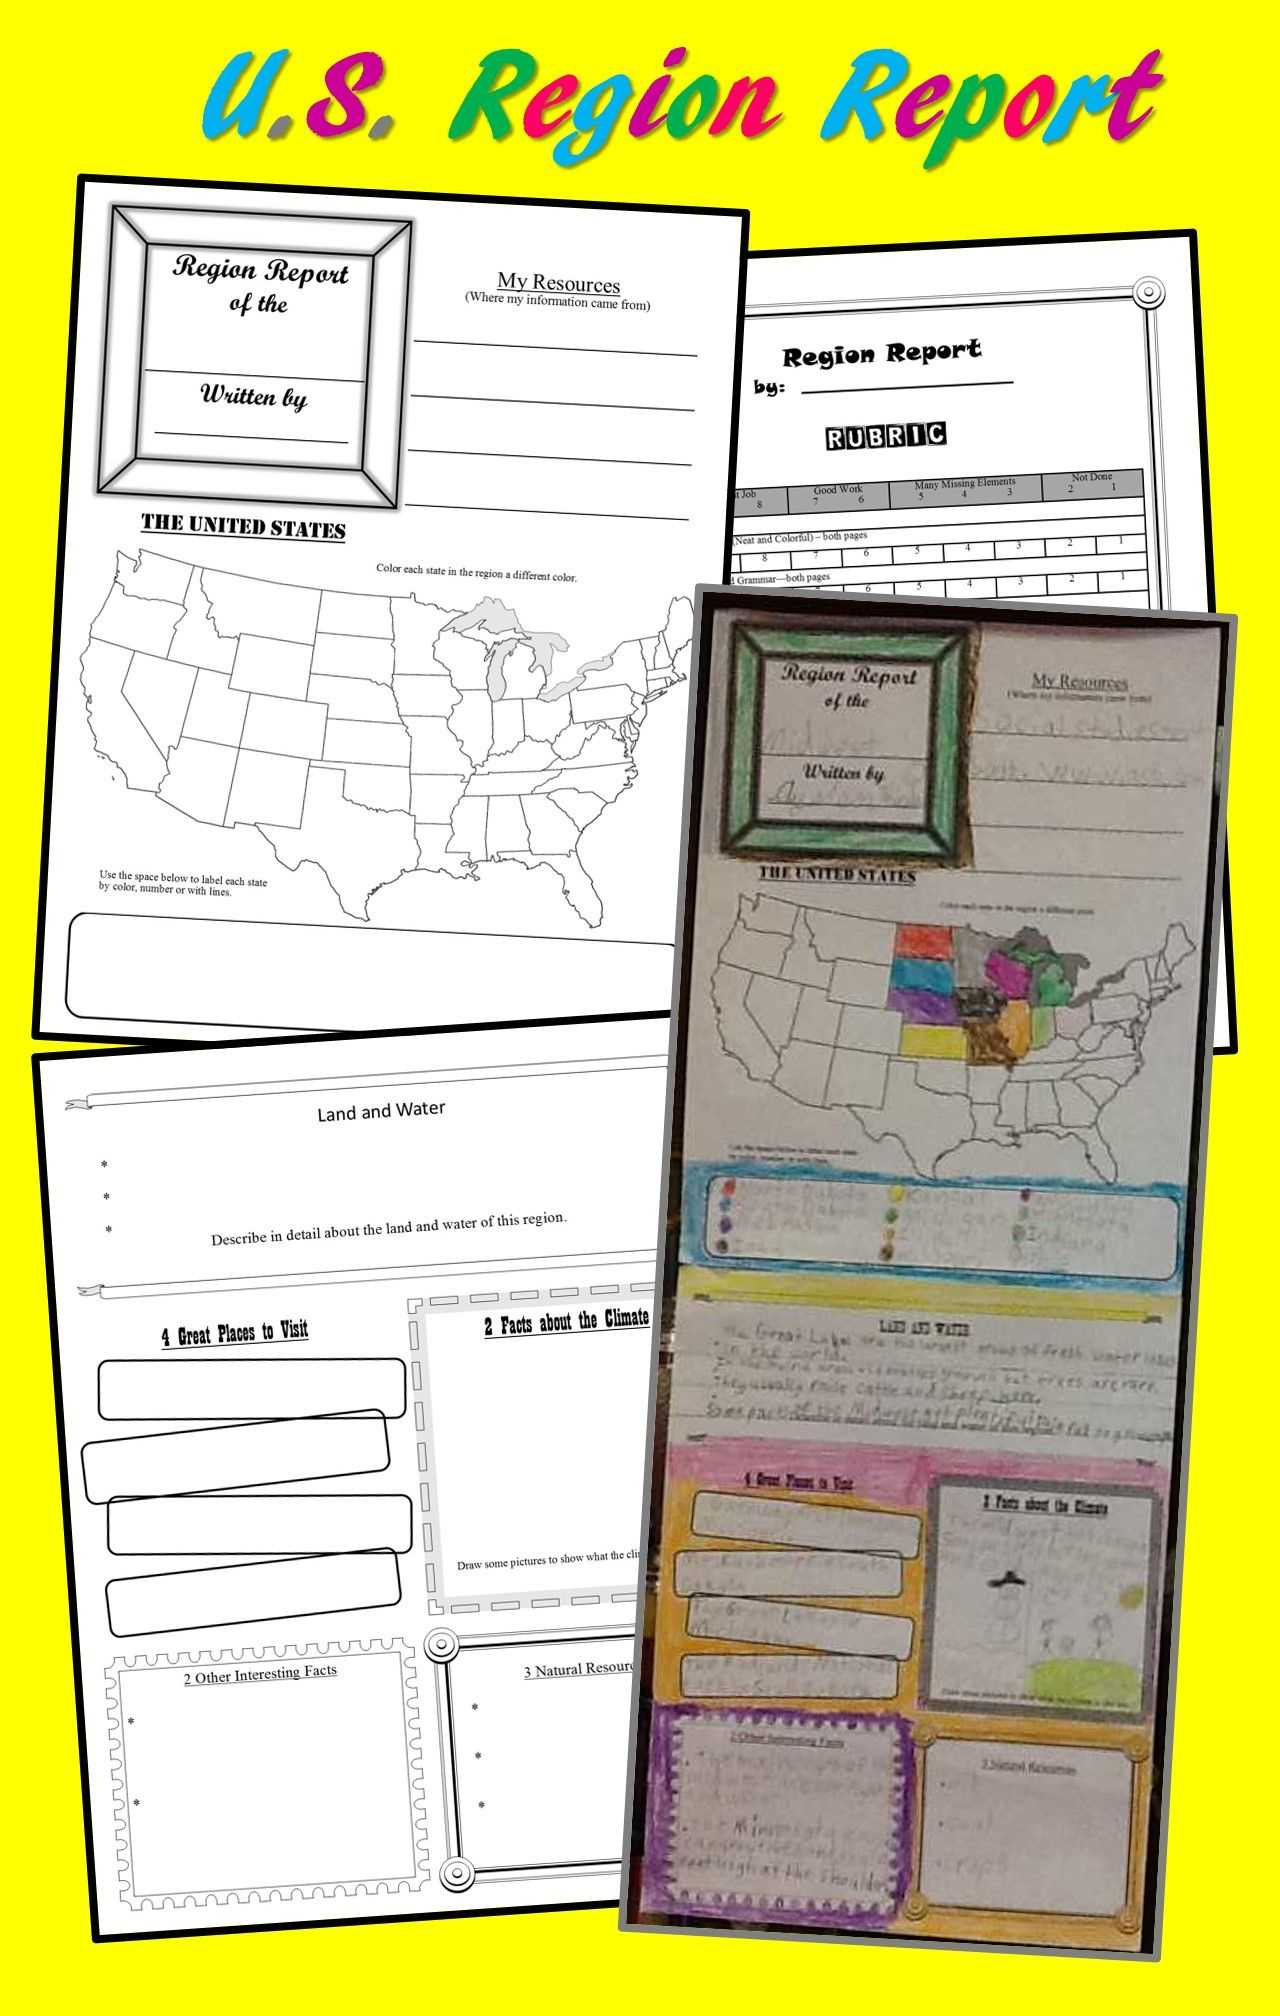 U.s. Region Report (Poster) Template For Intermediate Grades for State Report Template